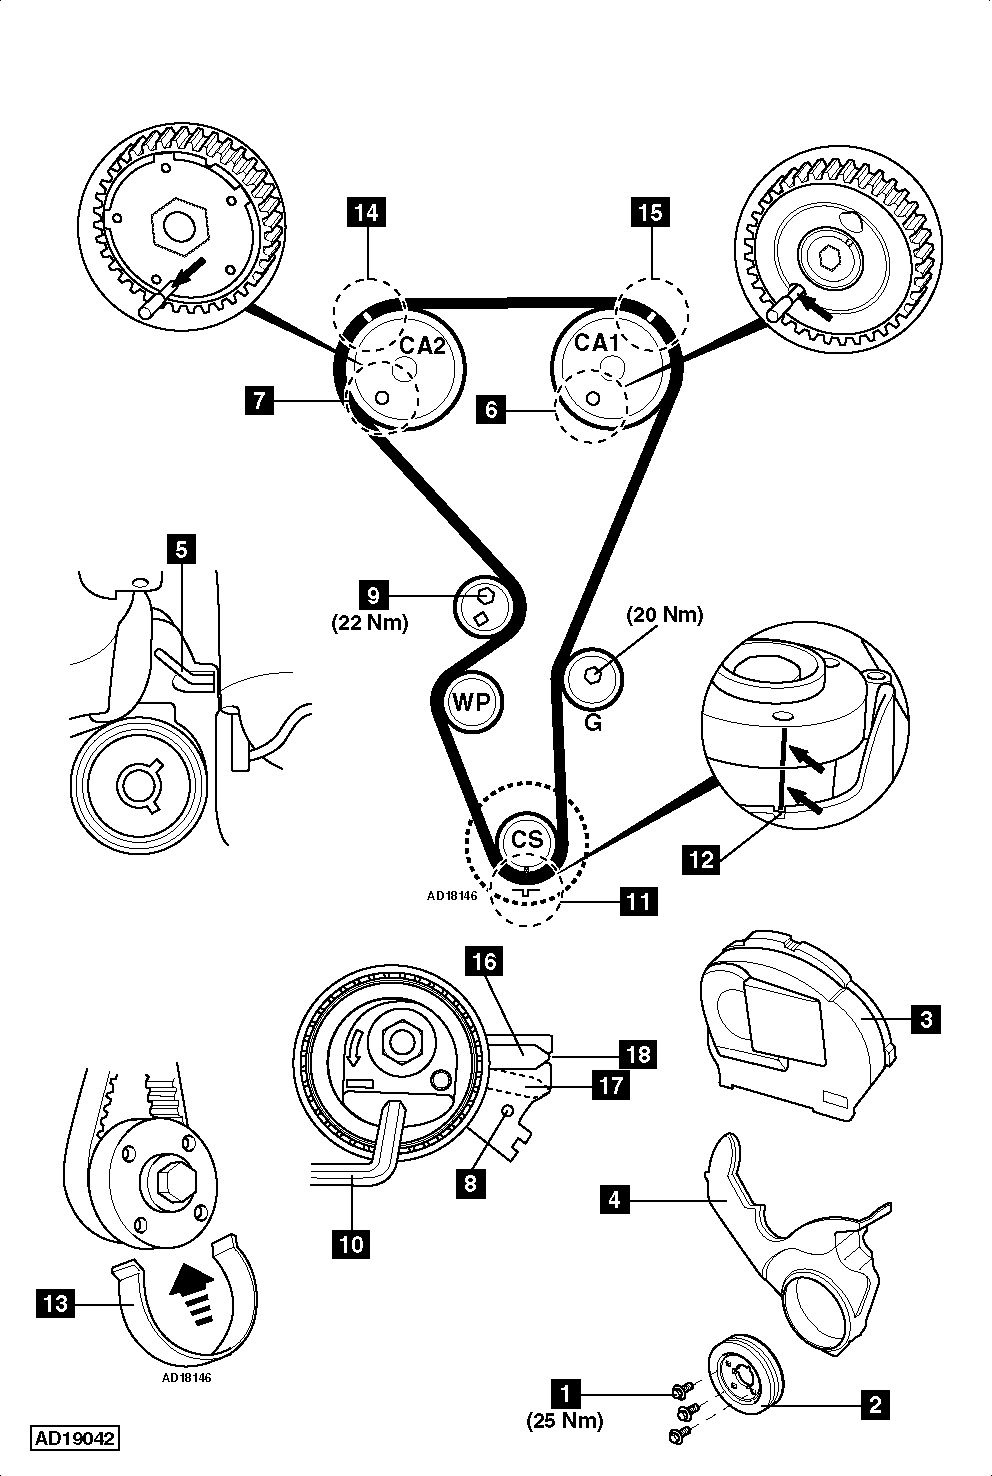 02 Mazda Protege Exhaust Diagram Block Wiring Explanation 2002 Timing Marks 2006 6 Hyundai Tiburon Elsavadorla 2003 Mpv